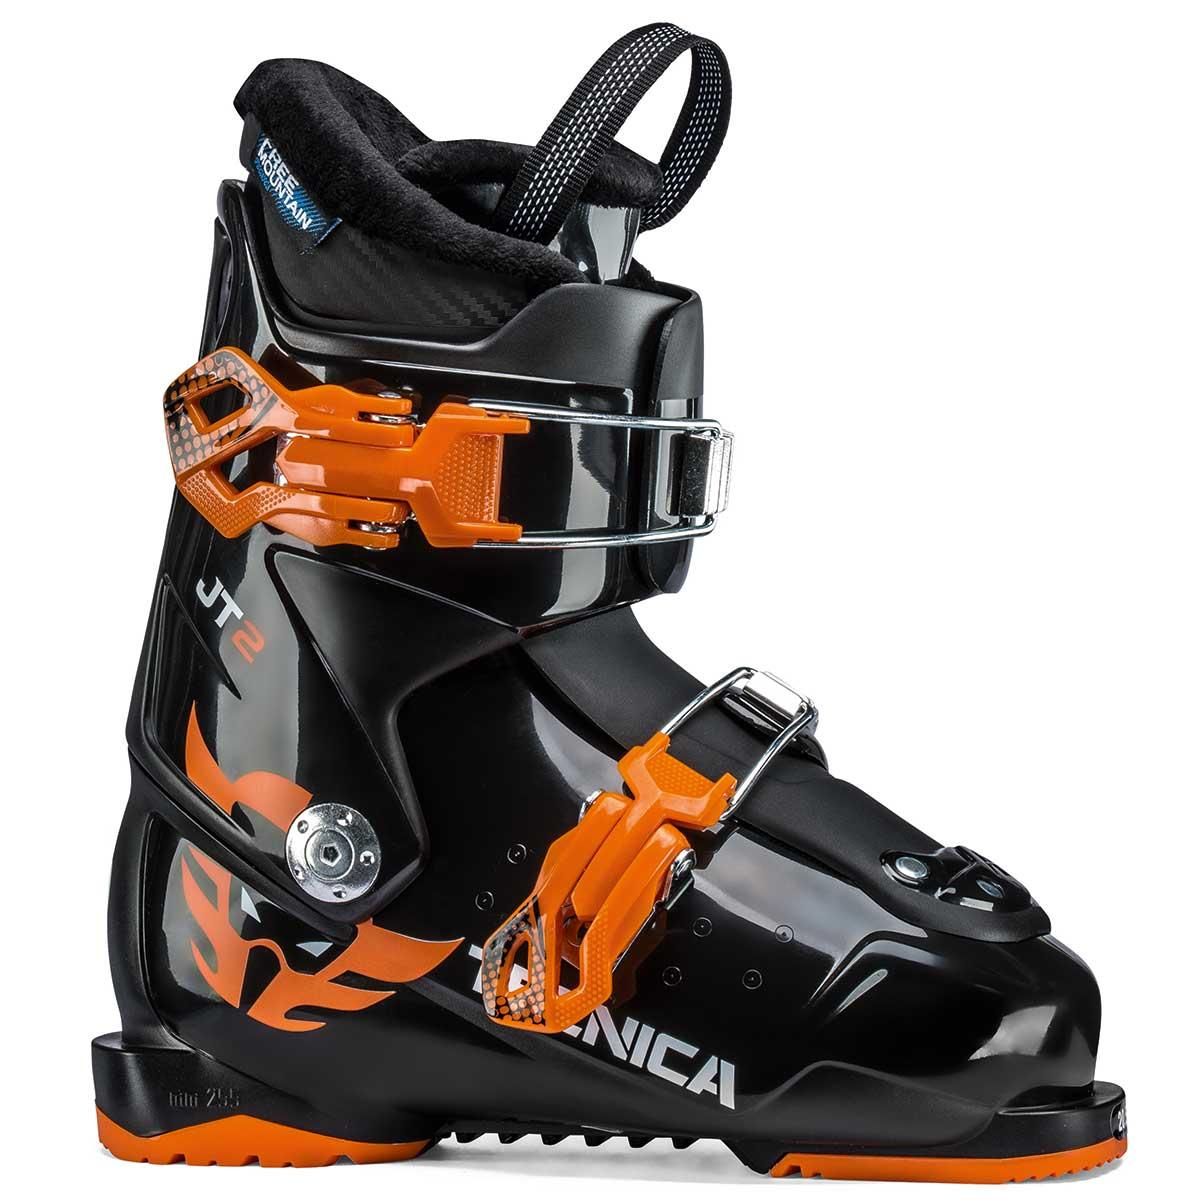 Tecnica JT 2 junior ski boot in black